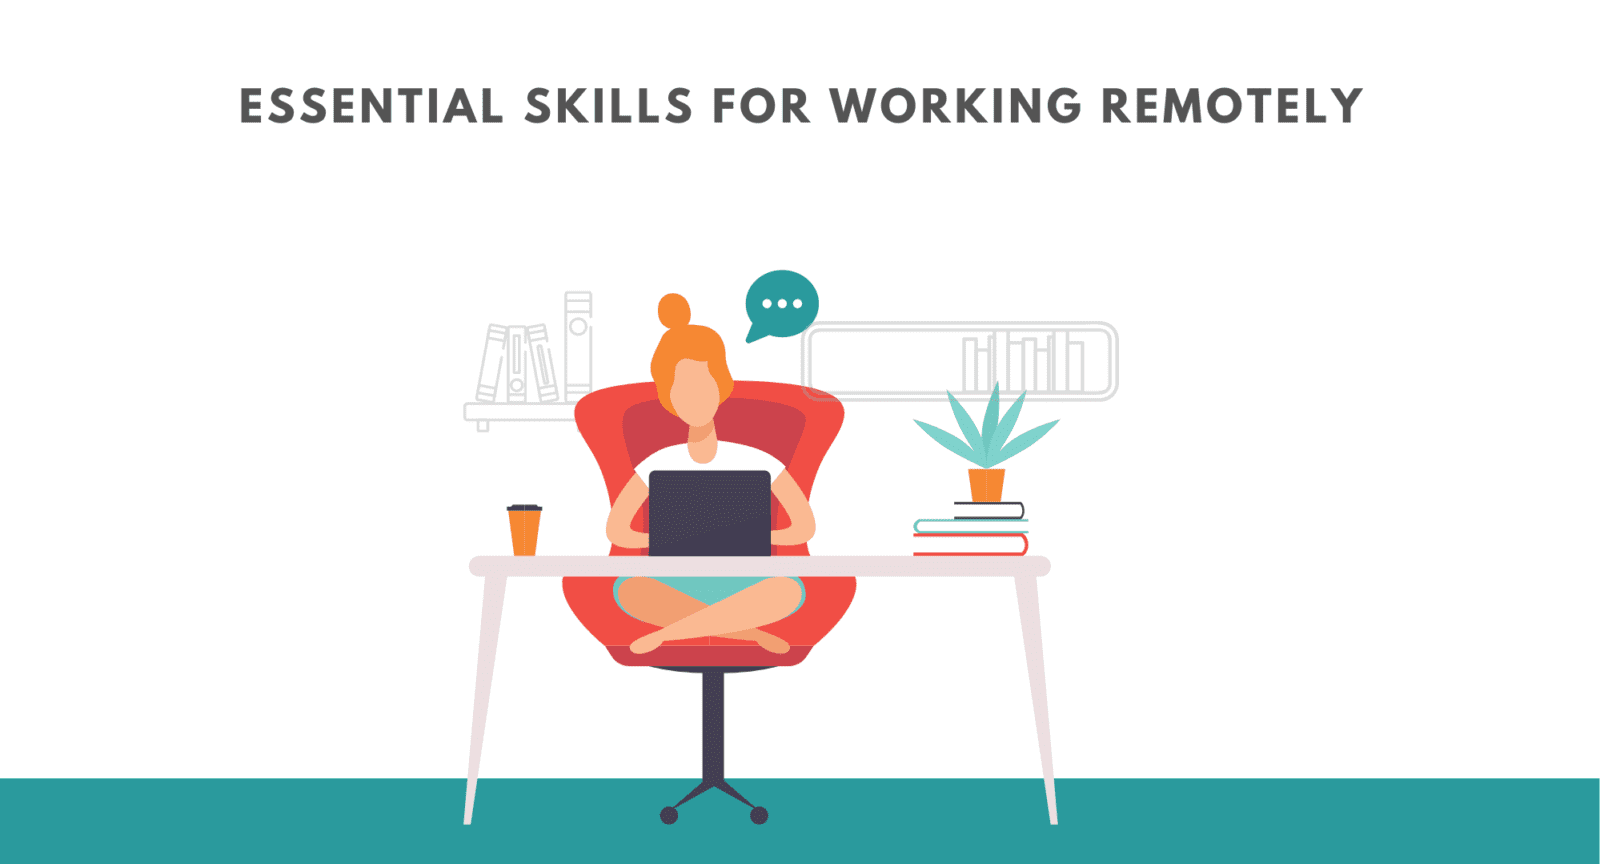 essential skills needed for working remotely. How to work remotely. What are the skills needed to work remotely.